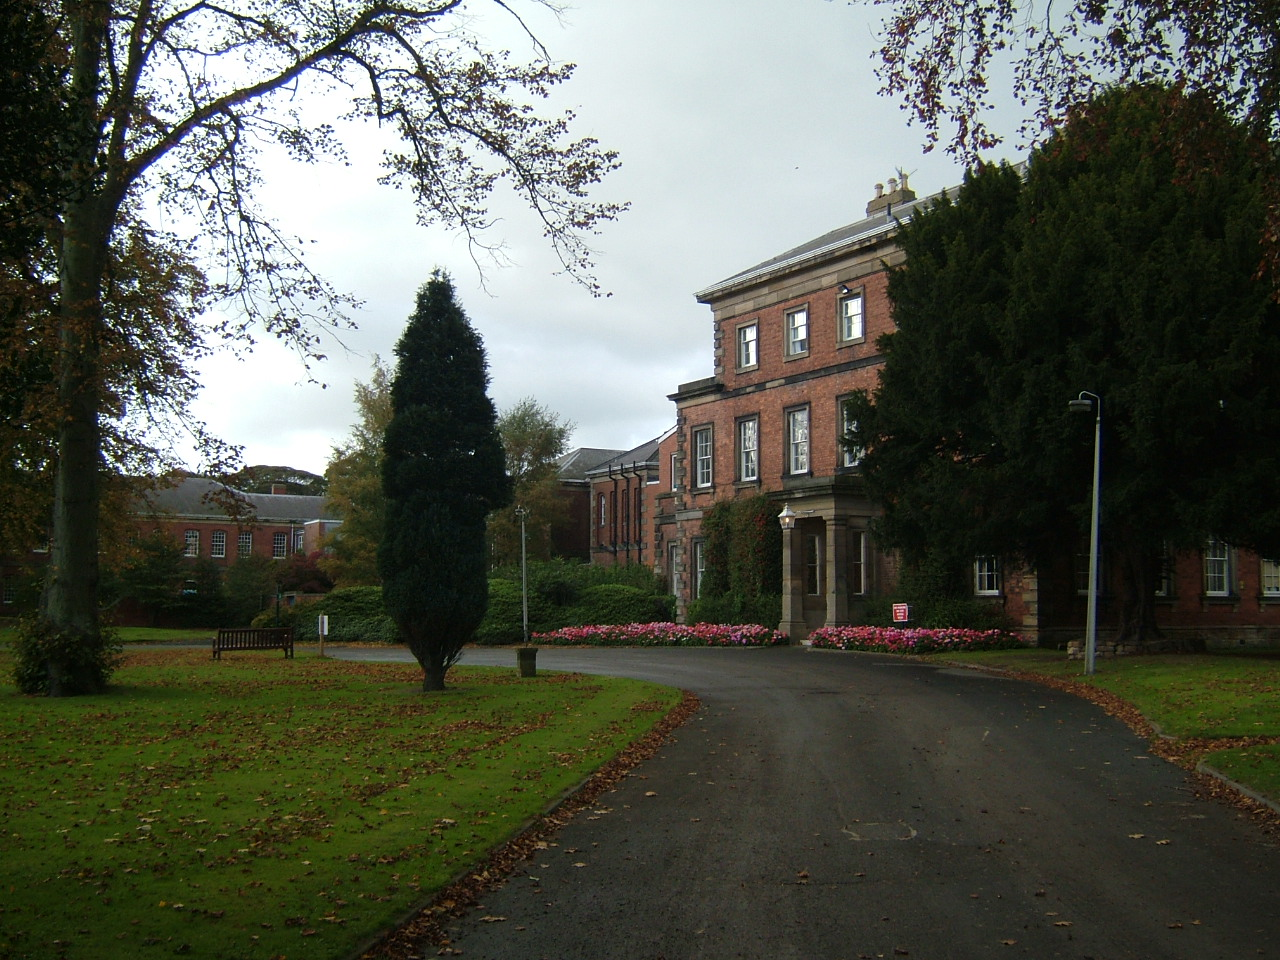 St George's Hospital, Morpeth